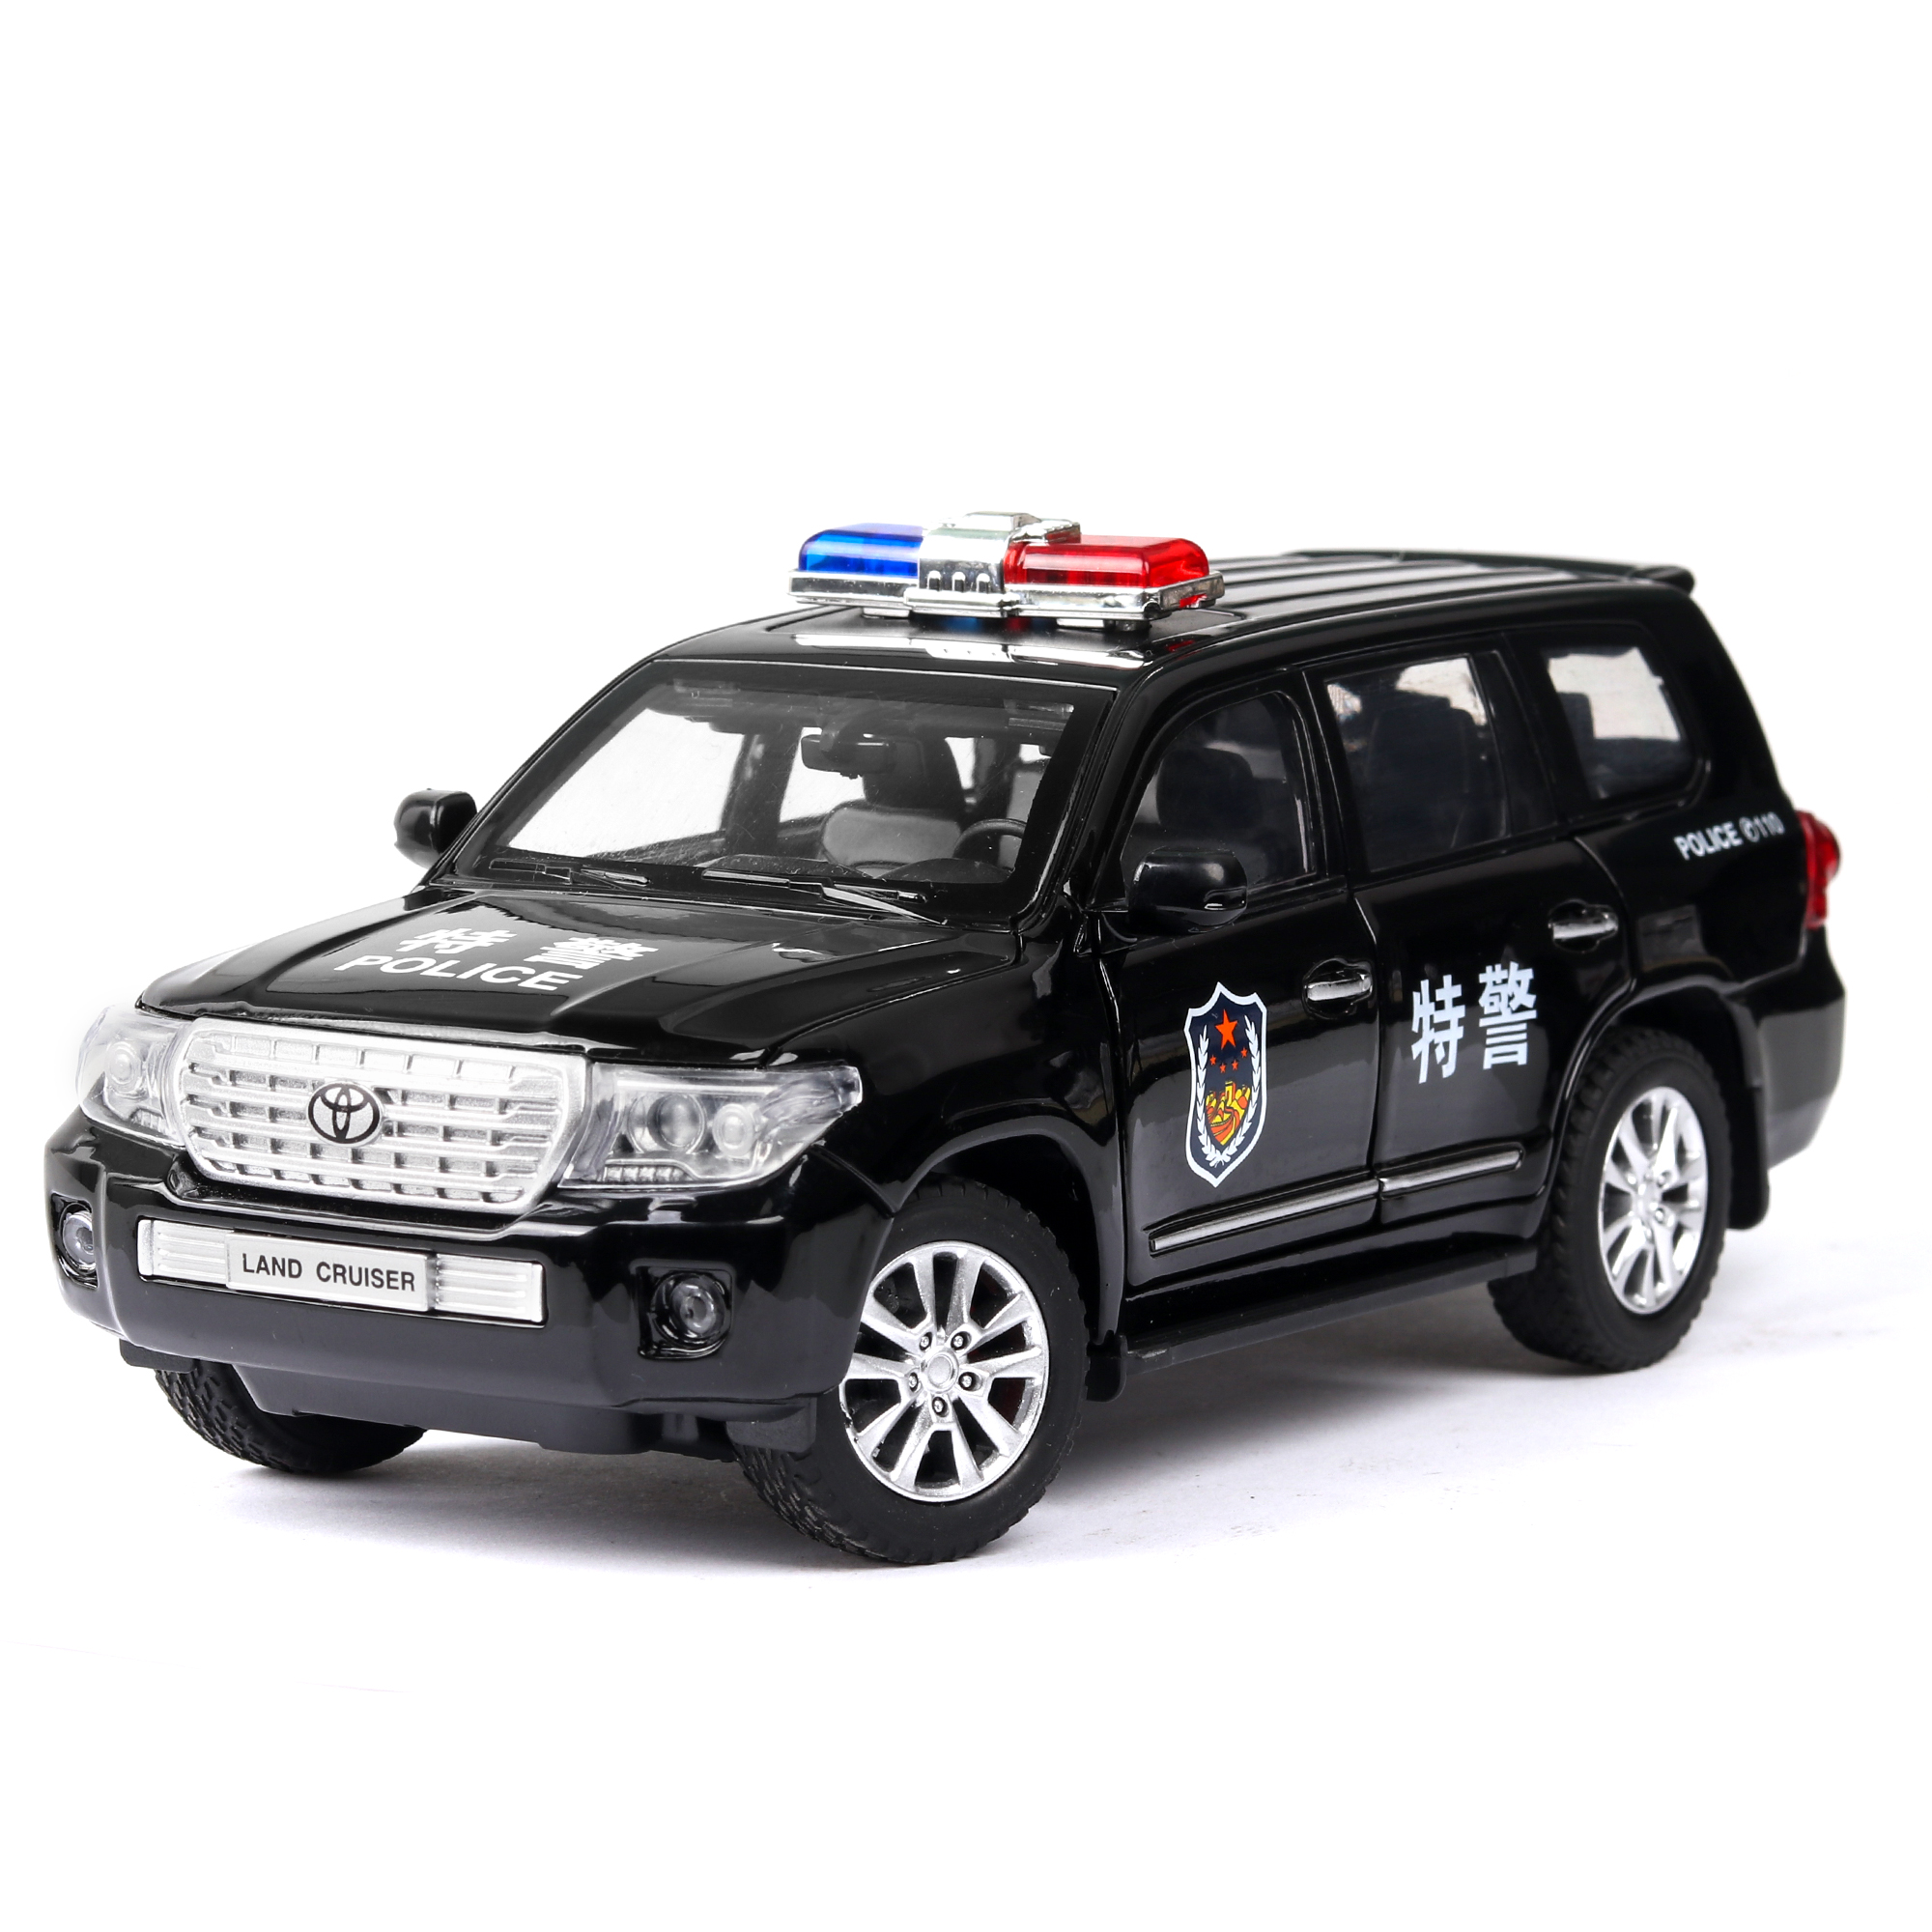 Diecast 1:24 High Simulation Toyota Land Cruiser Polices Car Alloy Vehicle Car Model Toy For Children Gifts Wheels Can Be Turned